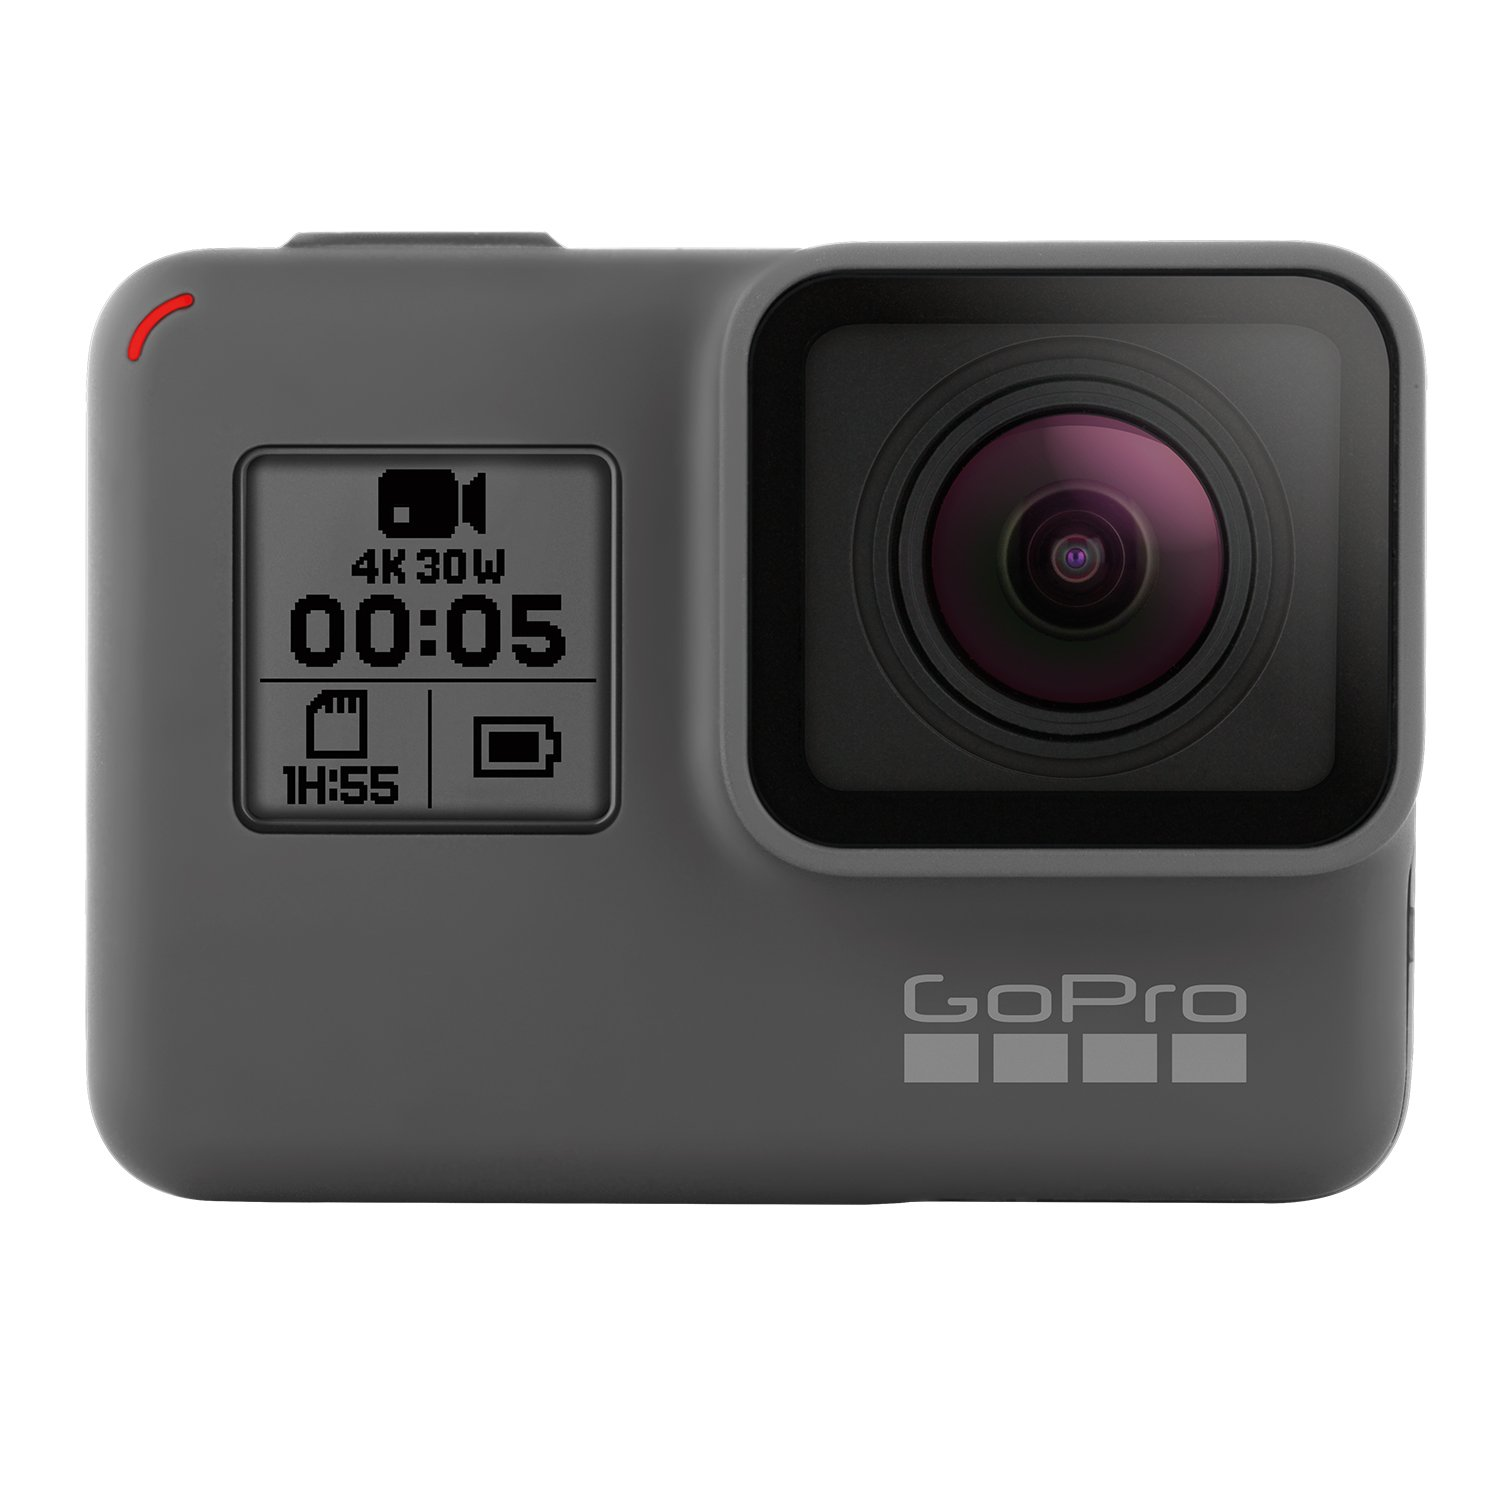 GoPro HERO5 Black (OFFICIAL GoPro CAMERA)